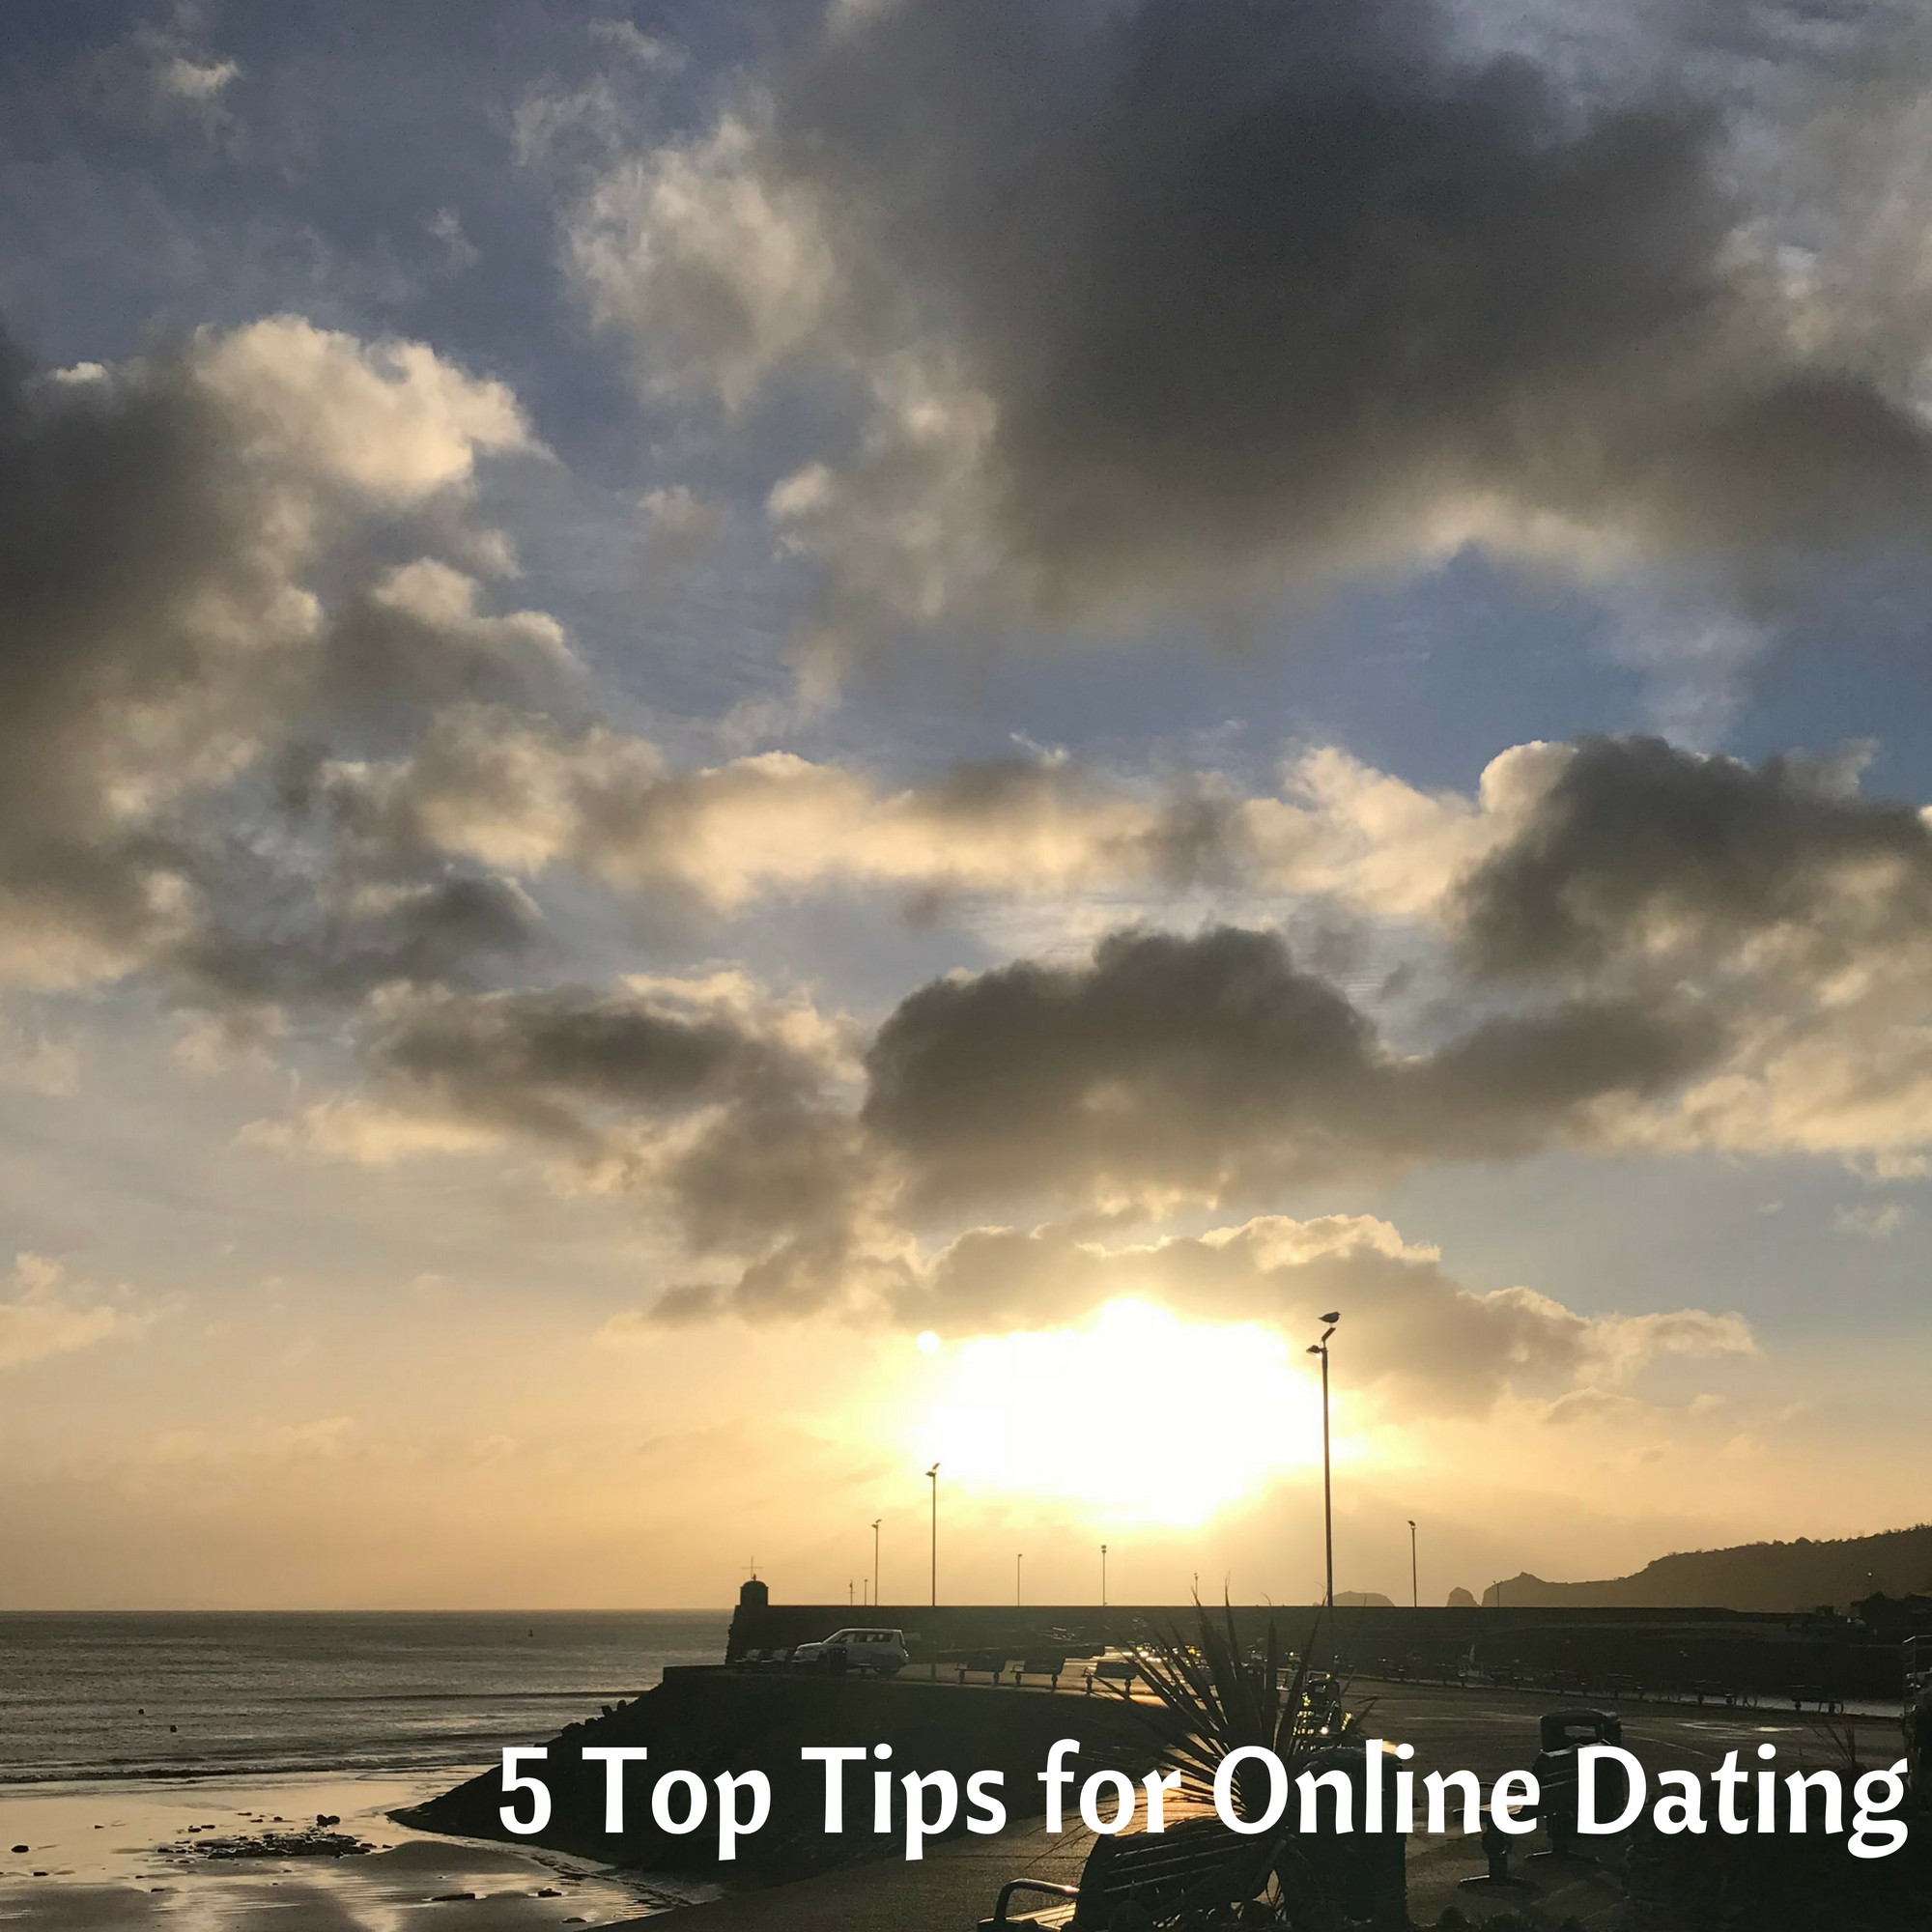 free world dating site you swipe Swipe right is our advice column that tackles the tricky world of online dating  swipe right - online dating for the real world no one answers my dating profile.